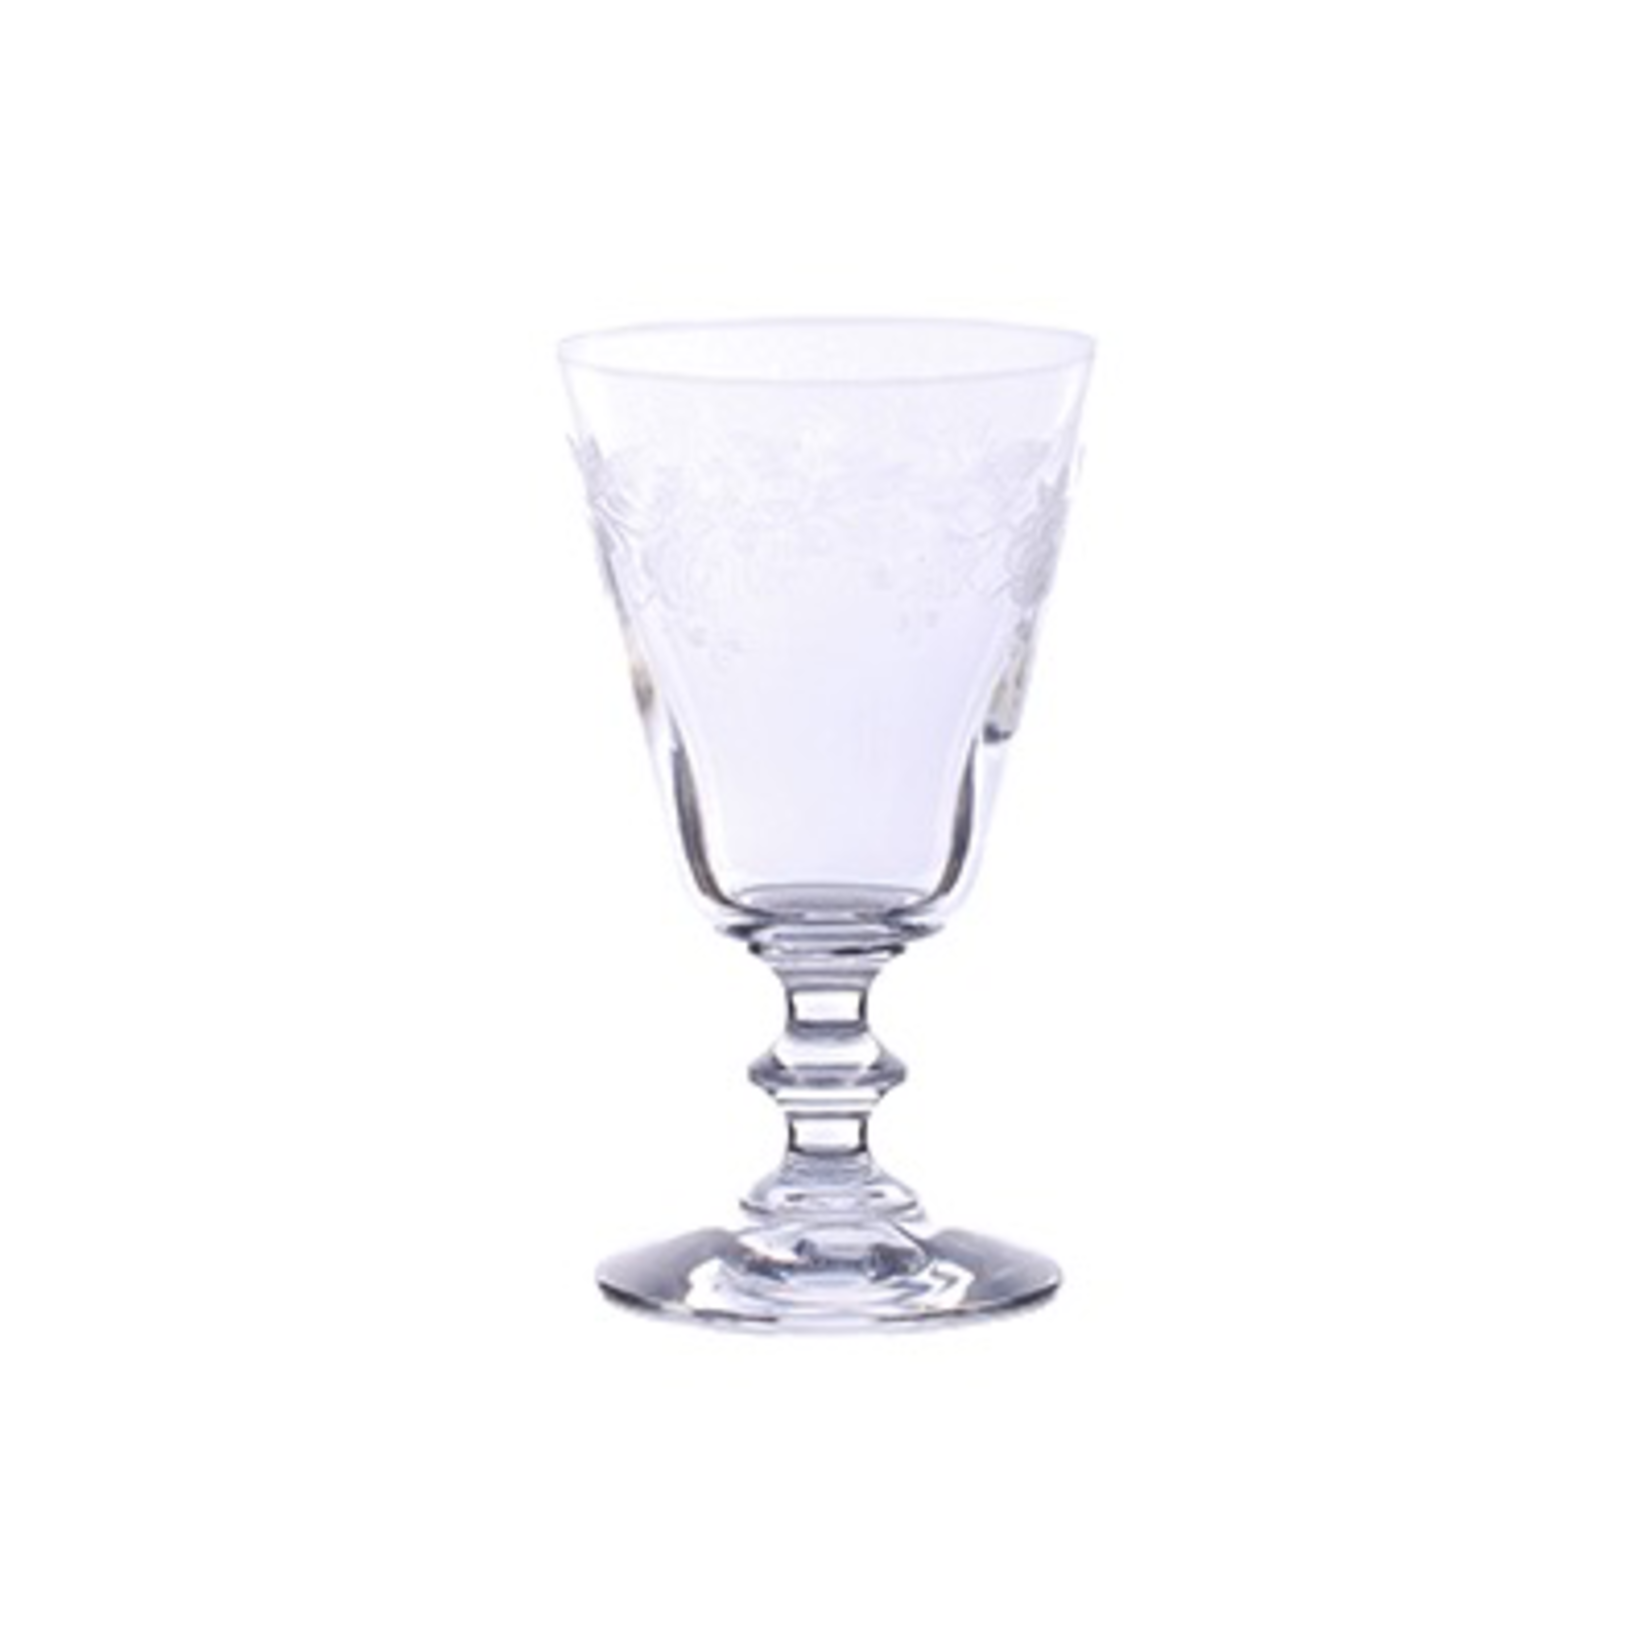 CHEHOMA WATER GLASS W/CARVED ROSES